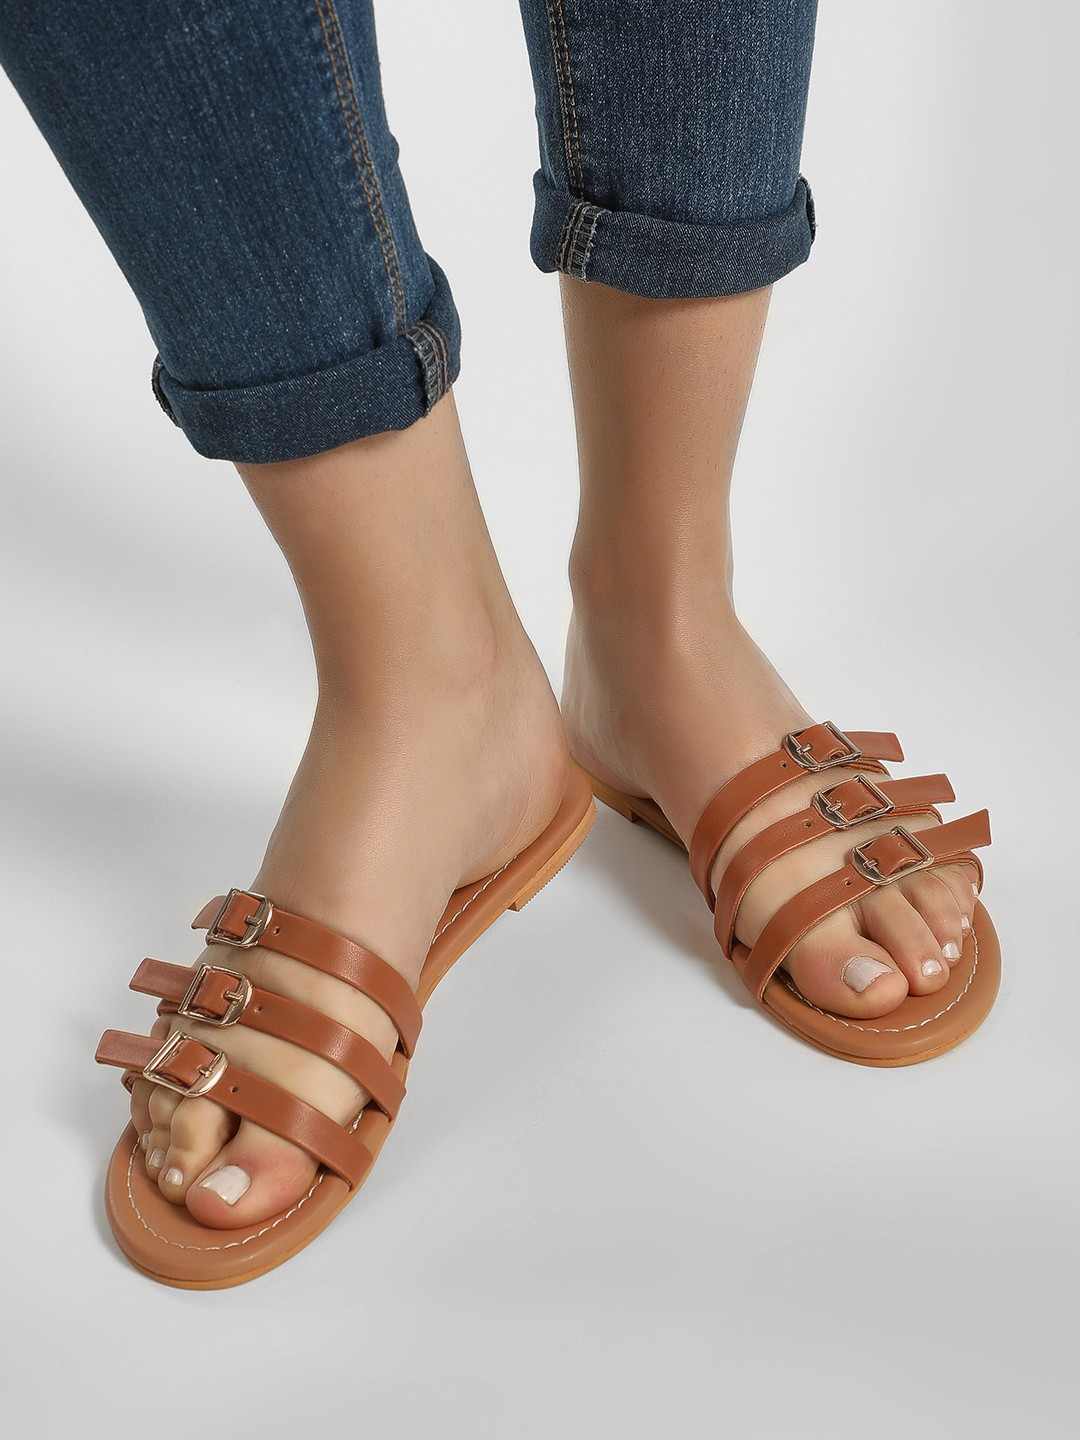 CAi Tan Three Strap Slides With Buckles 1